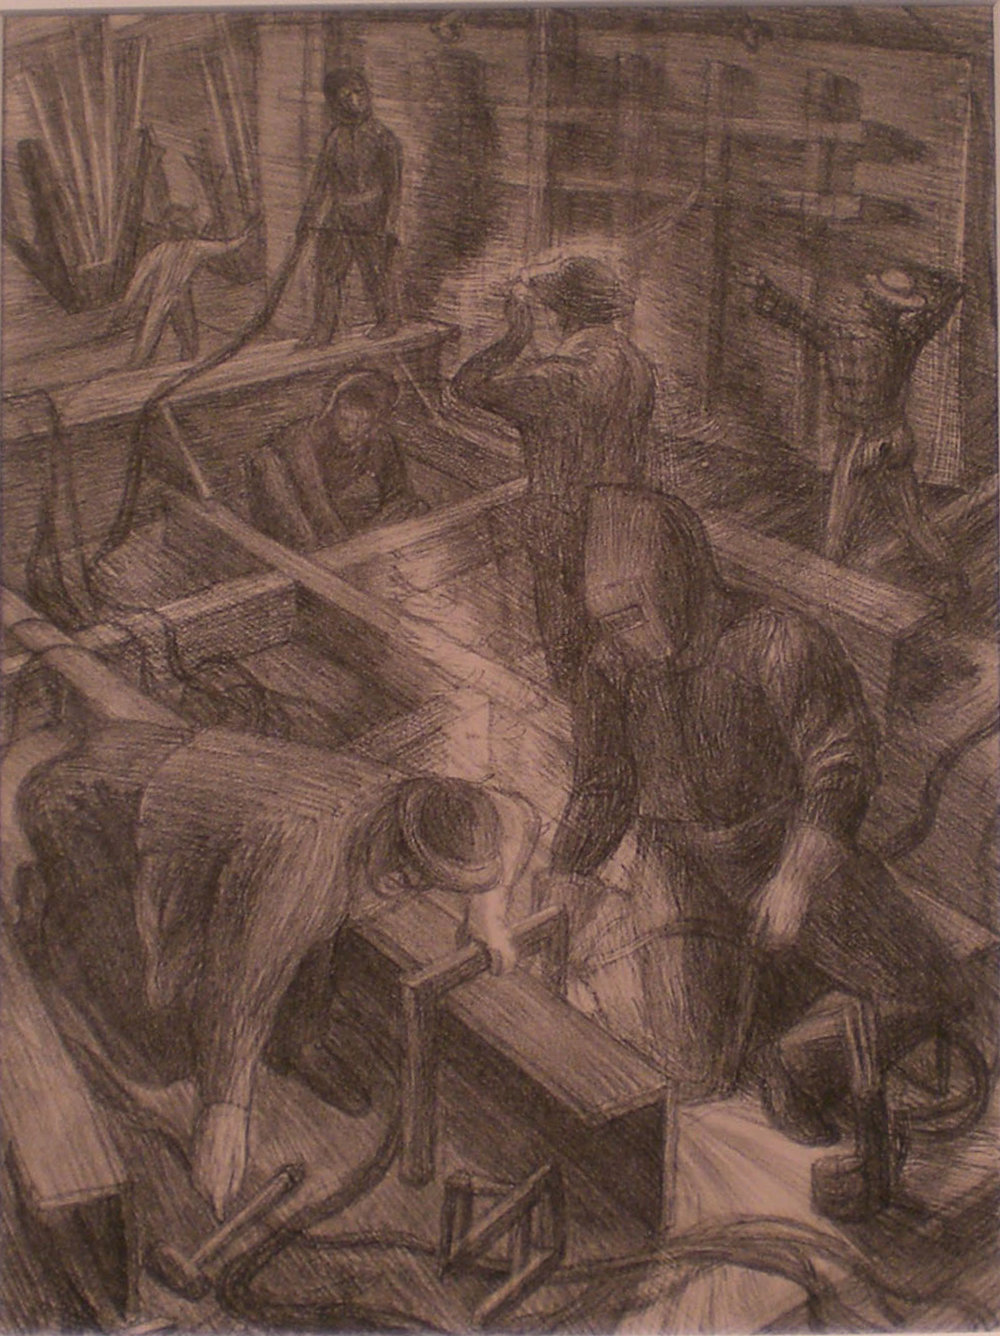 Shipyard Workers , print 17 x 15 $150  Martina Gangle Curl